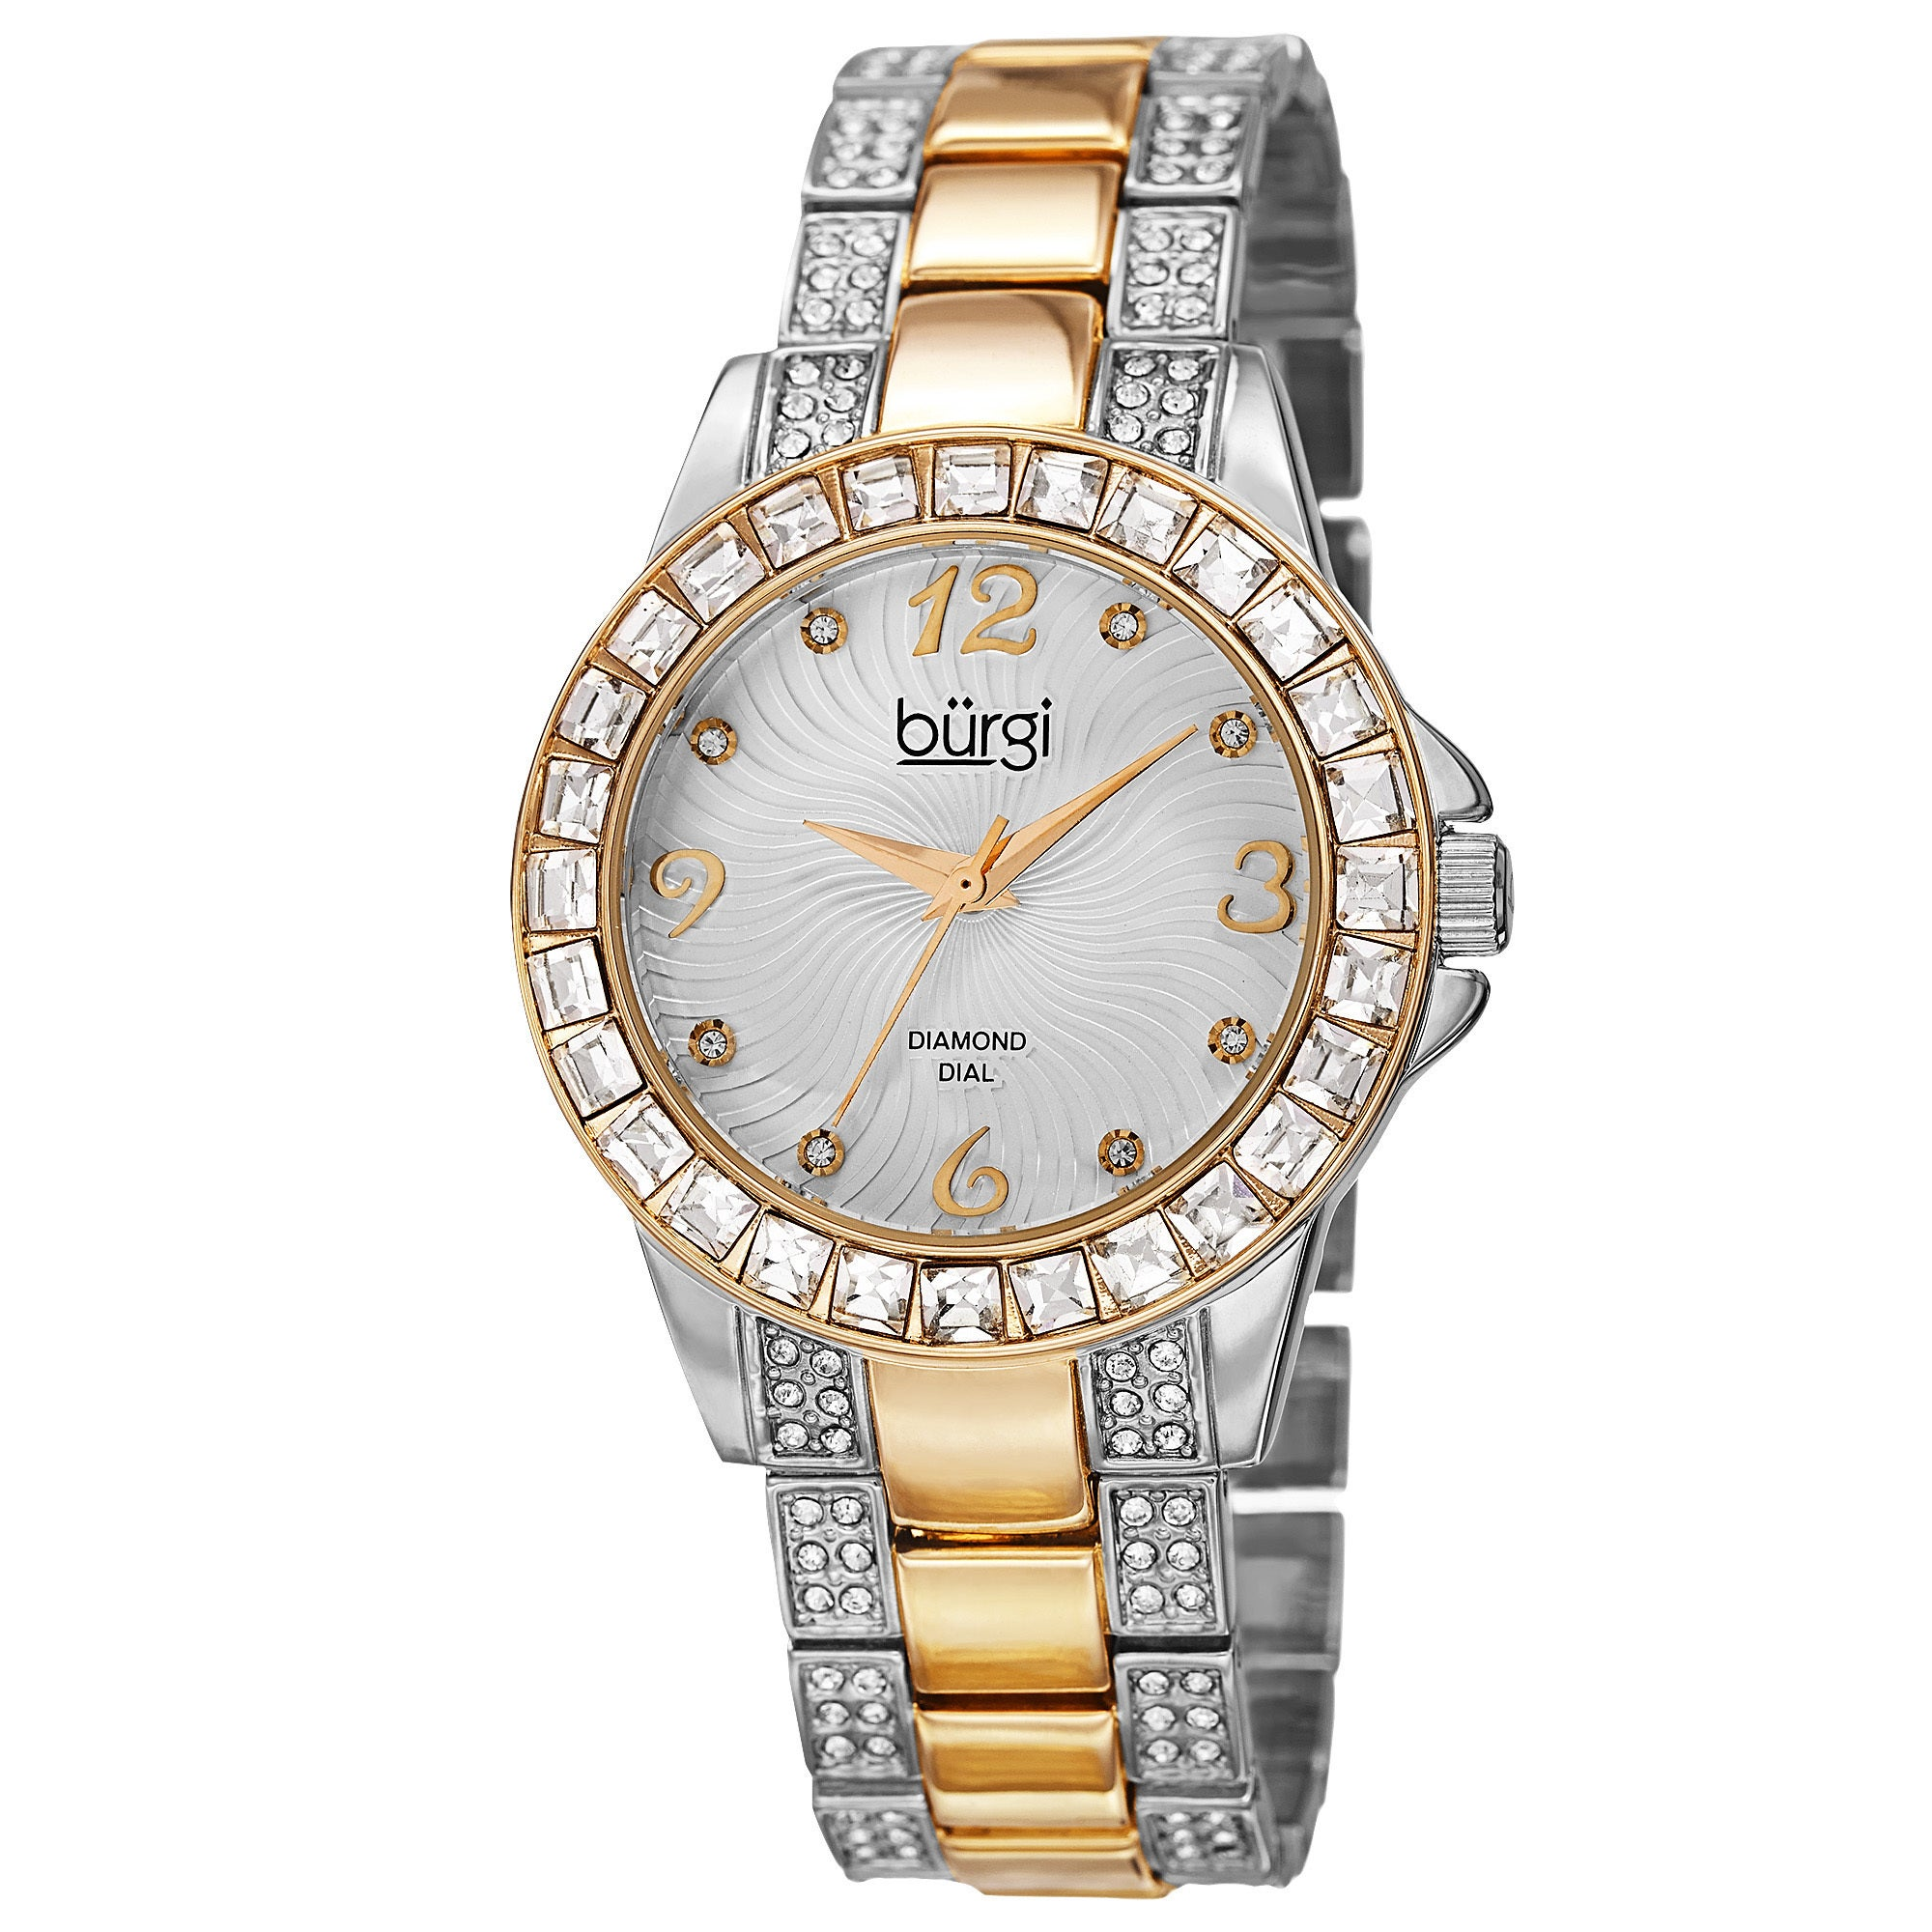 67d5da68398 Two-Tone Women s Watches